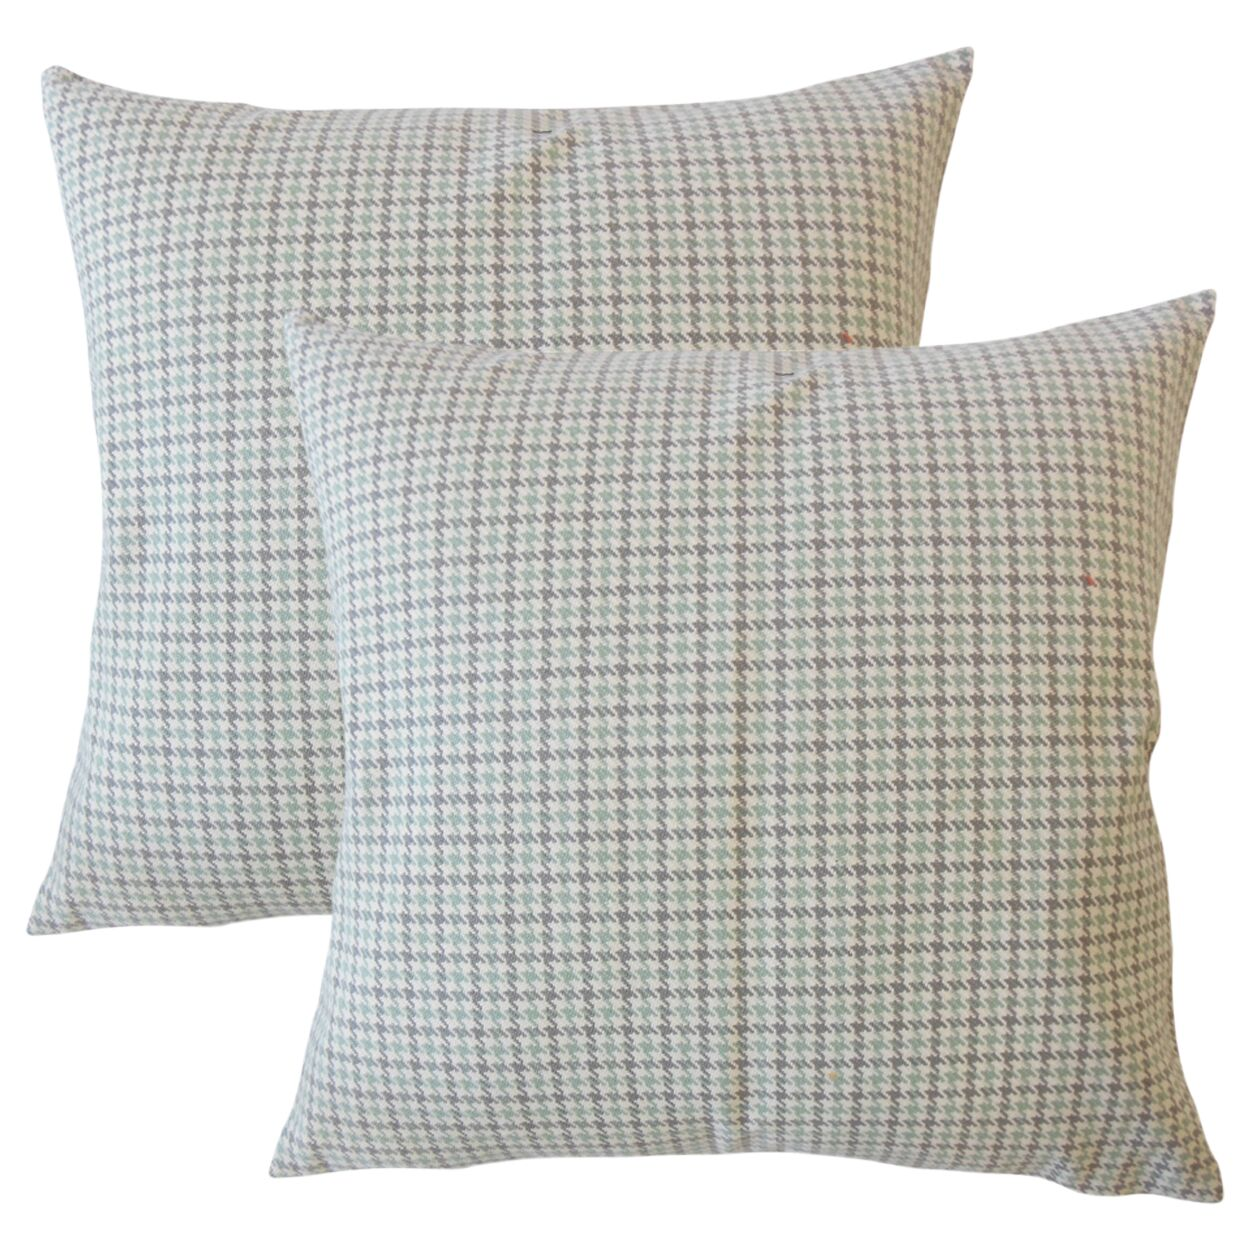 Posada Houndstooth Cotton Throw Pillow